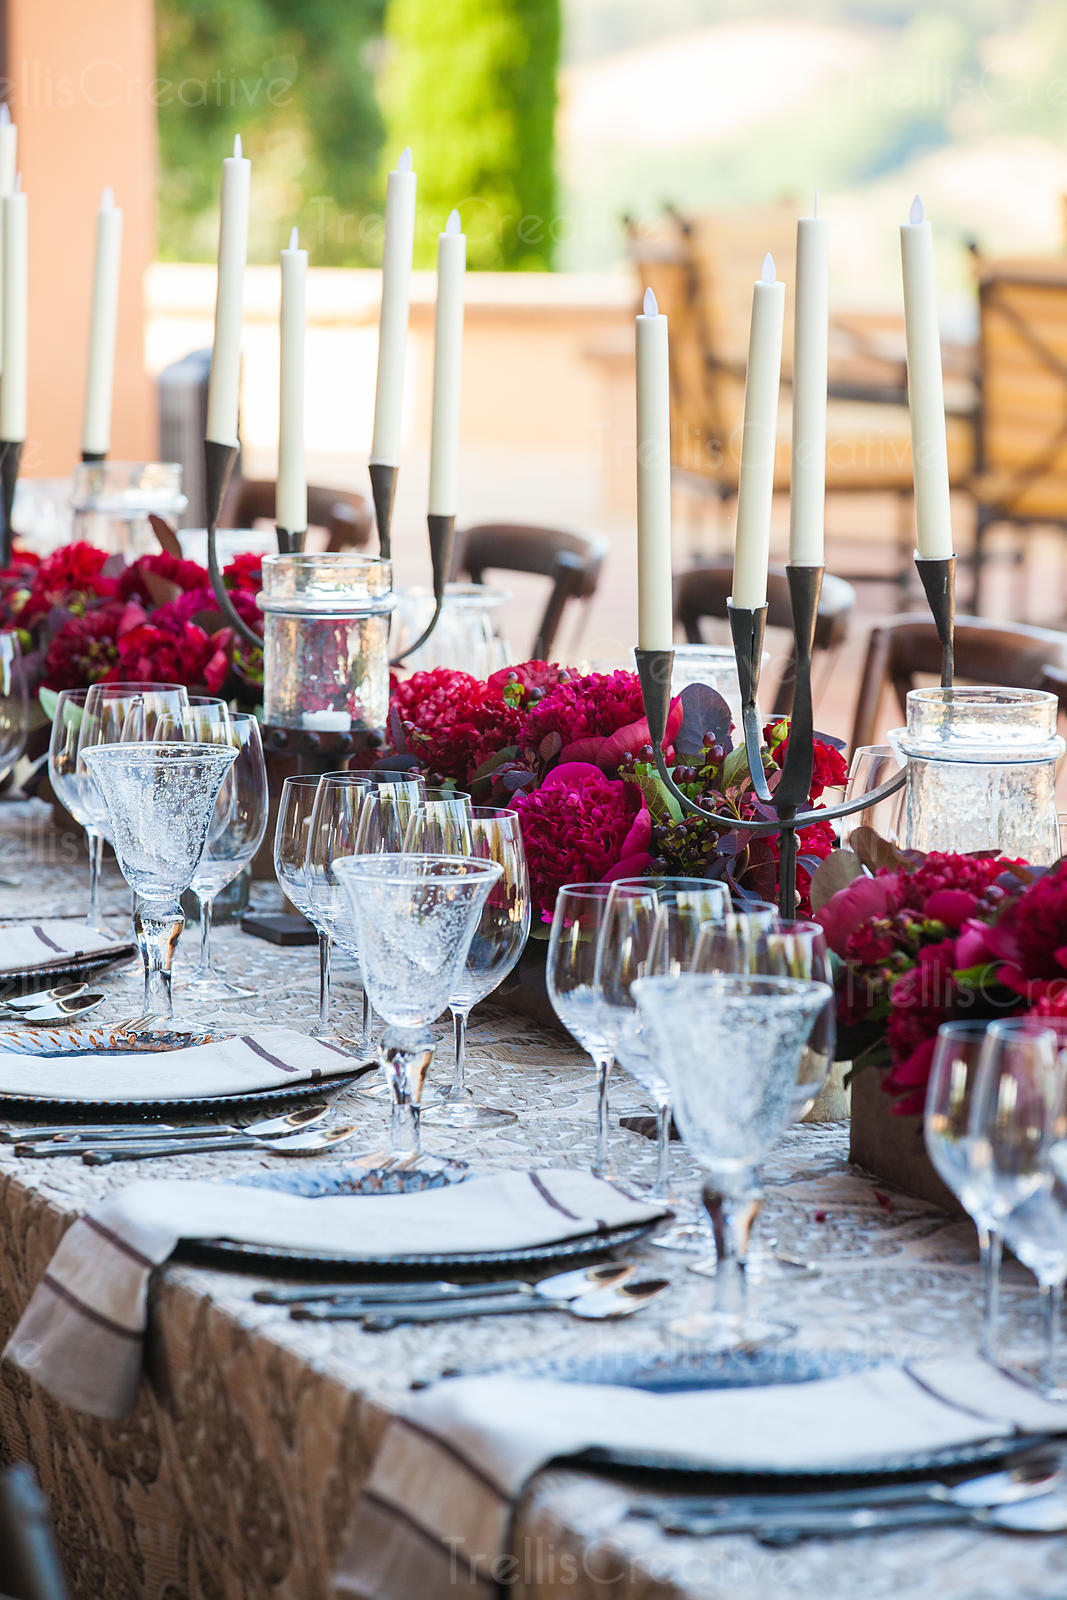 An elegantly decorated dinner table at a wedding